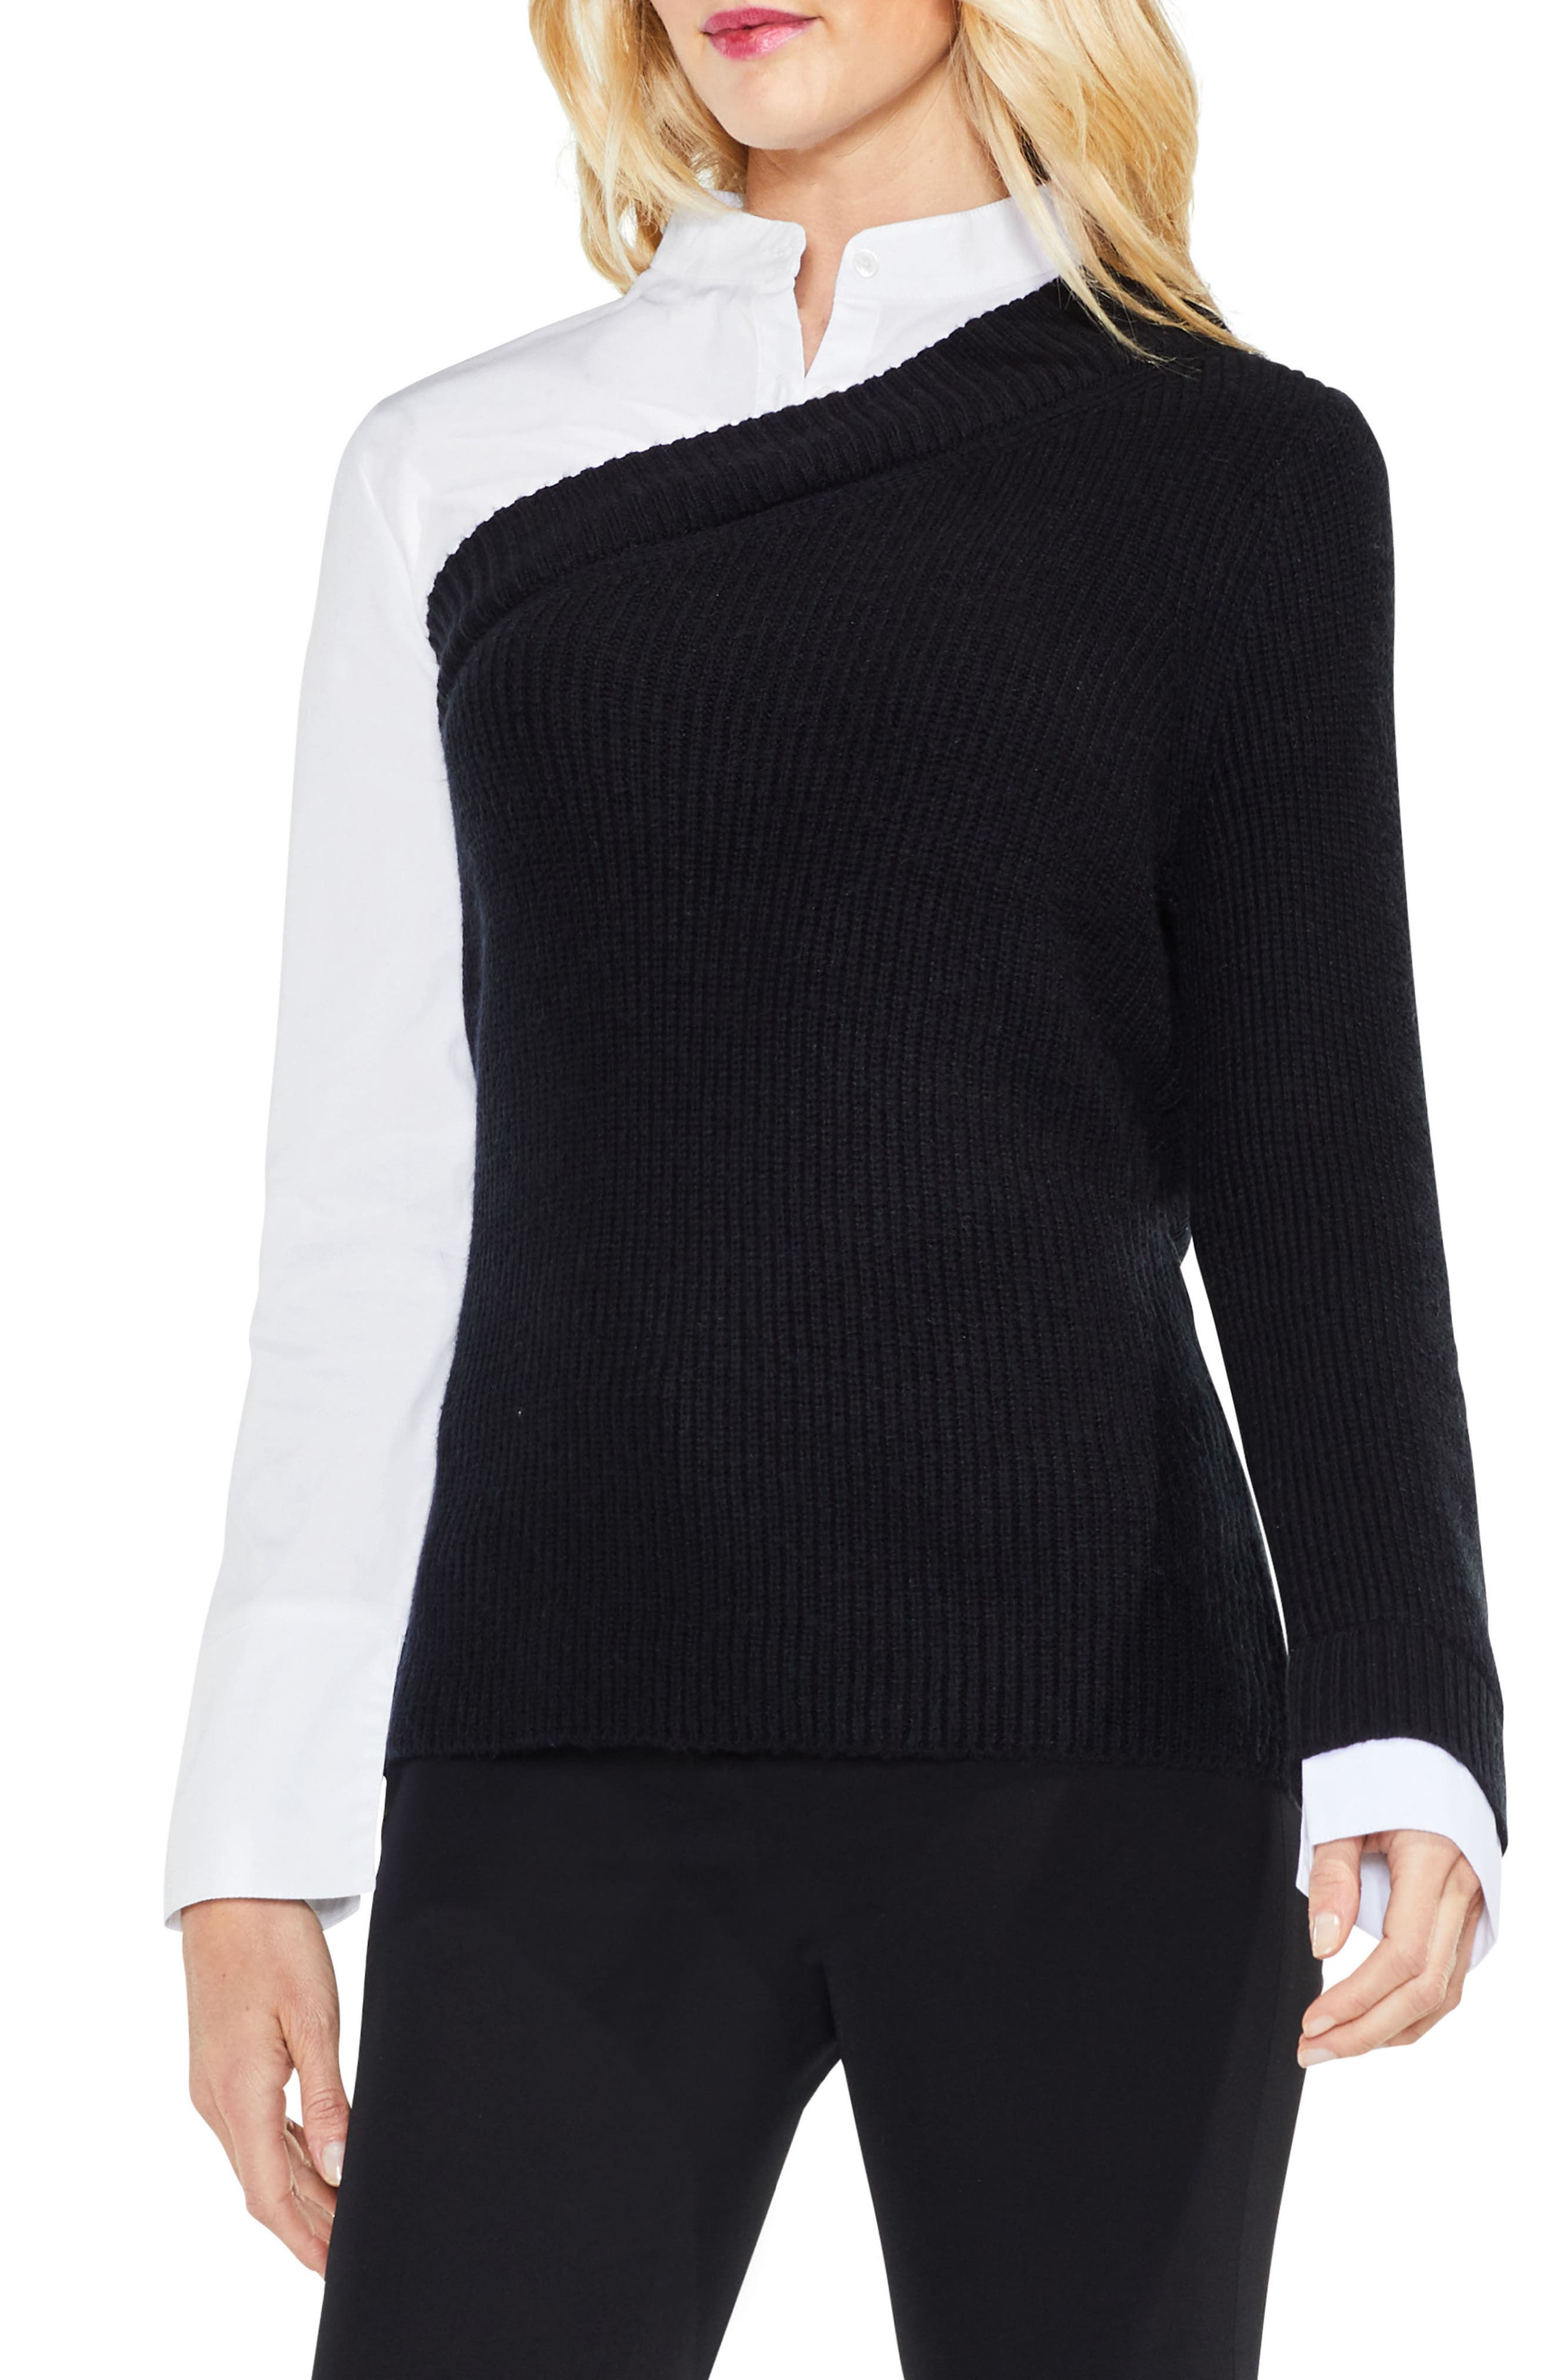 Main Image - Vince Camuto Mix Media Layered Sweater